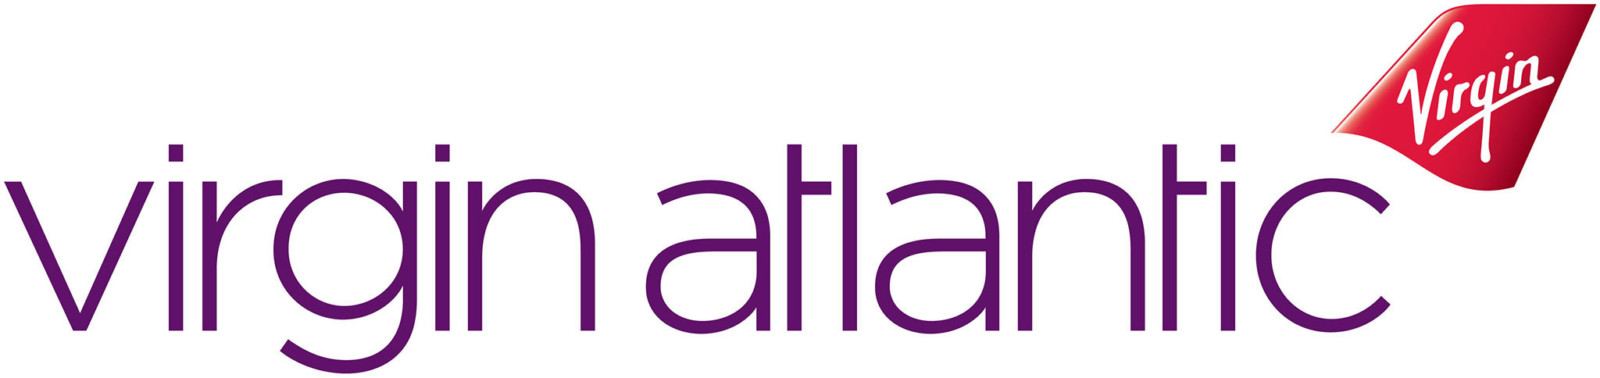 http://Virgin%20Atlantic%20logo